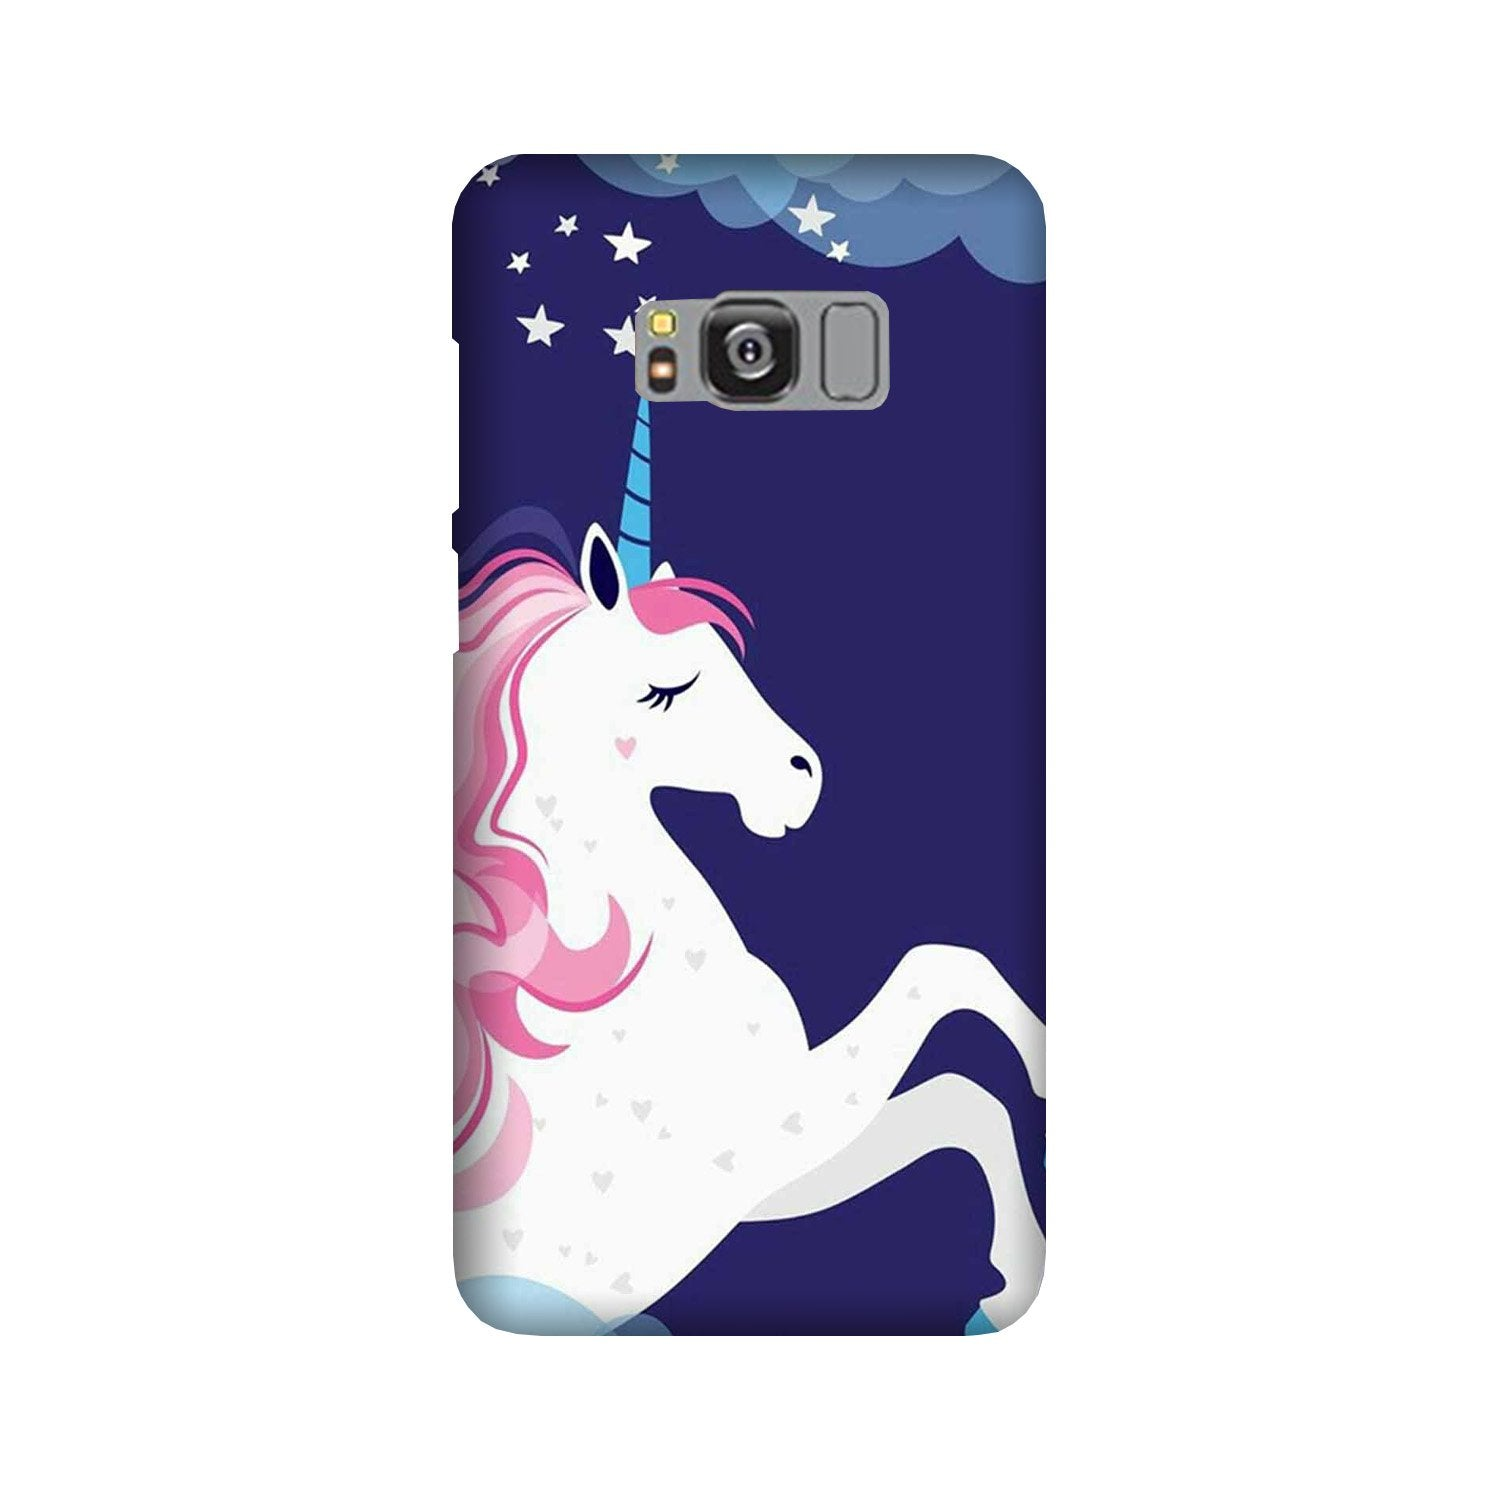 Unicorn Mobile Back Case for Galaxy S8 Plus  (Design - 365)